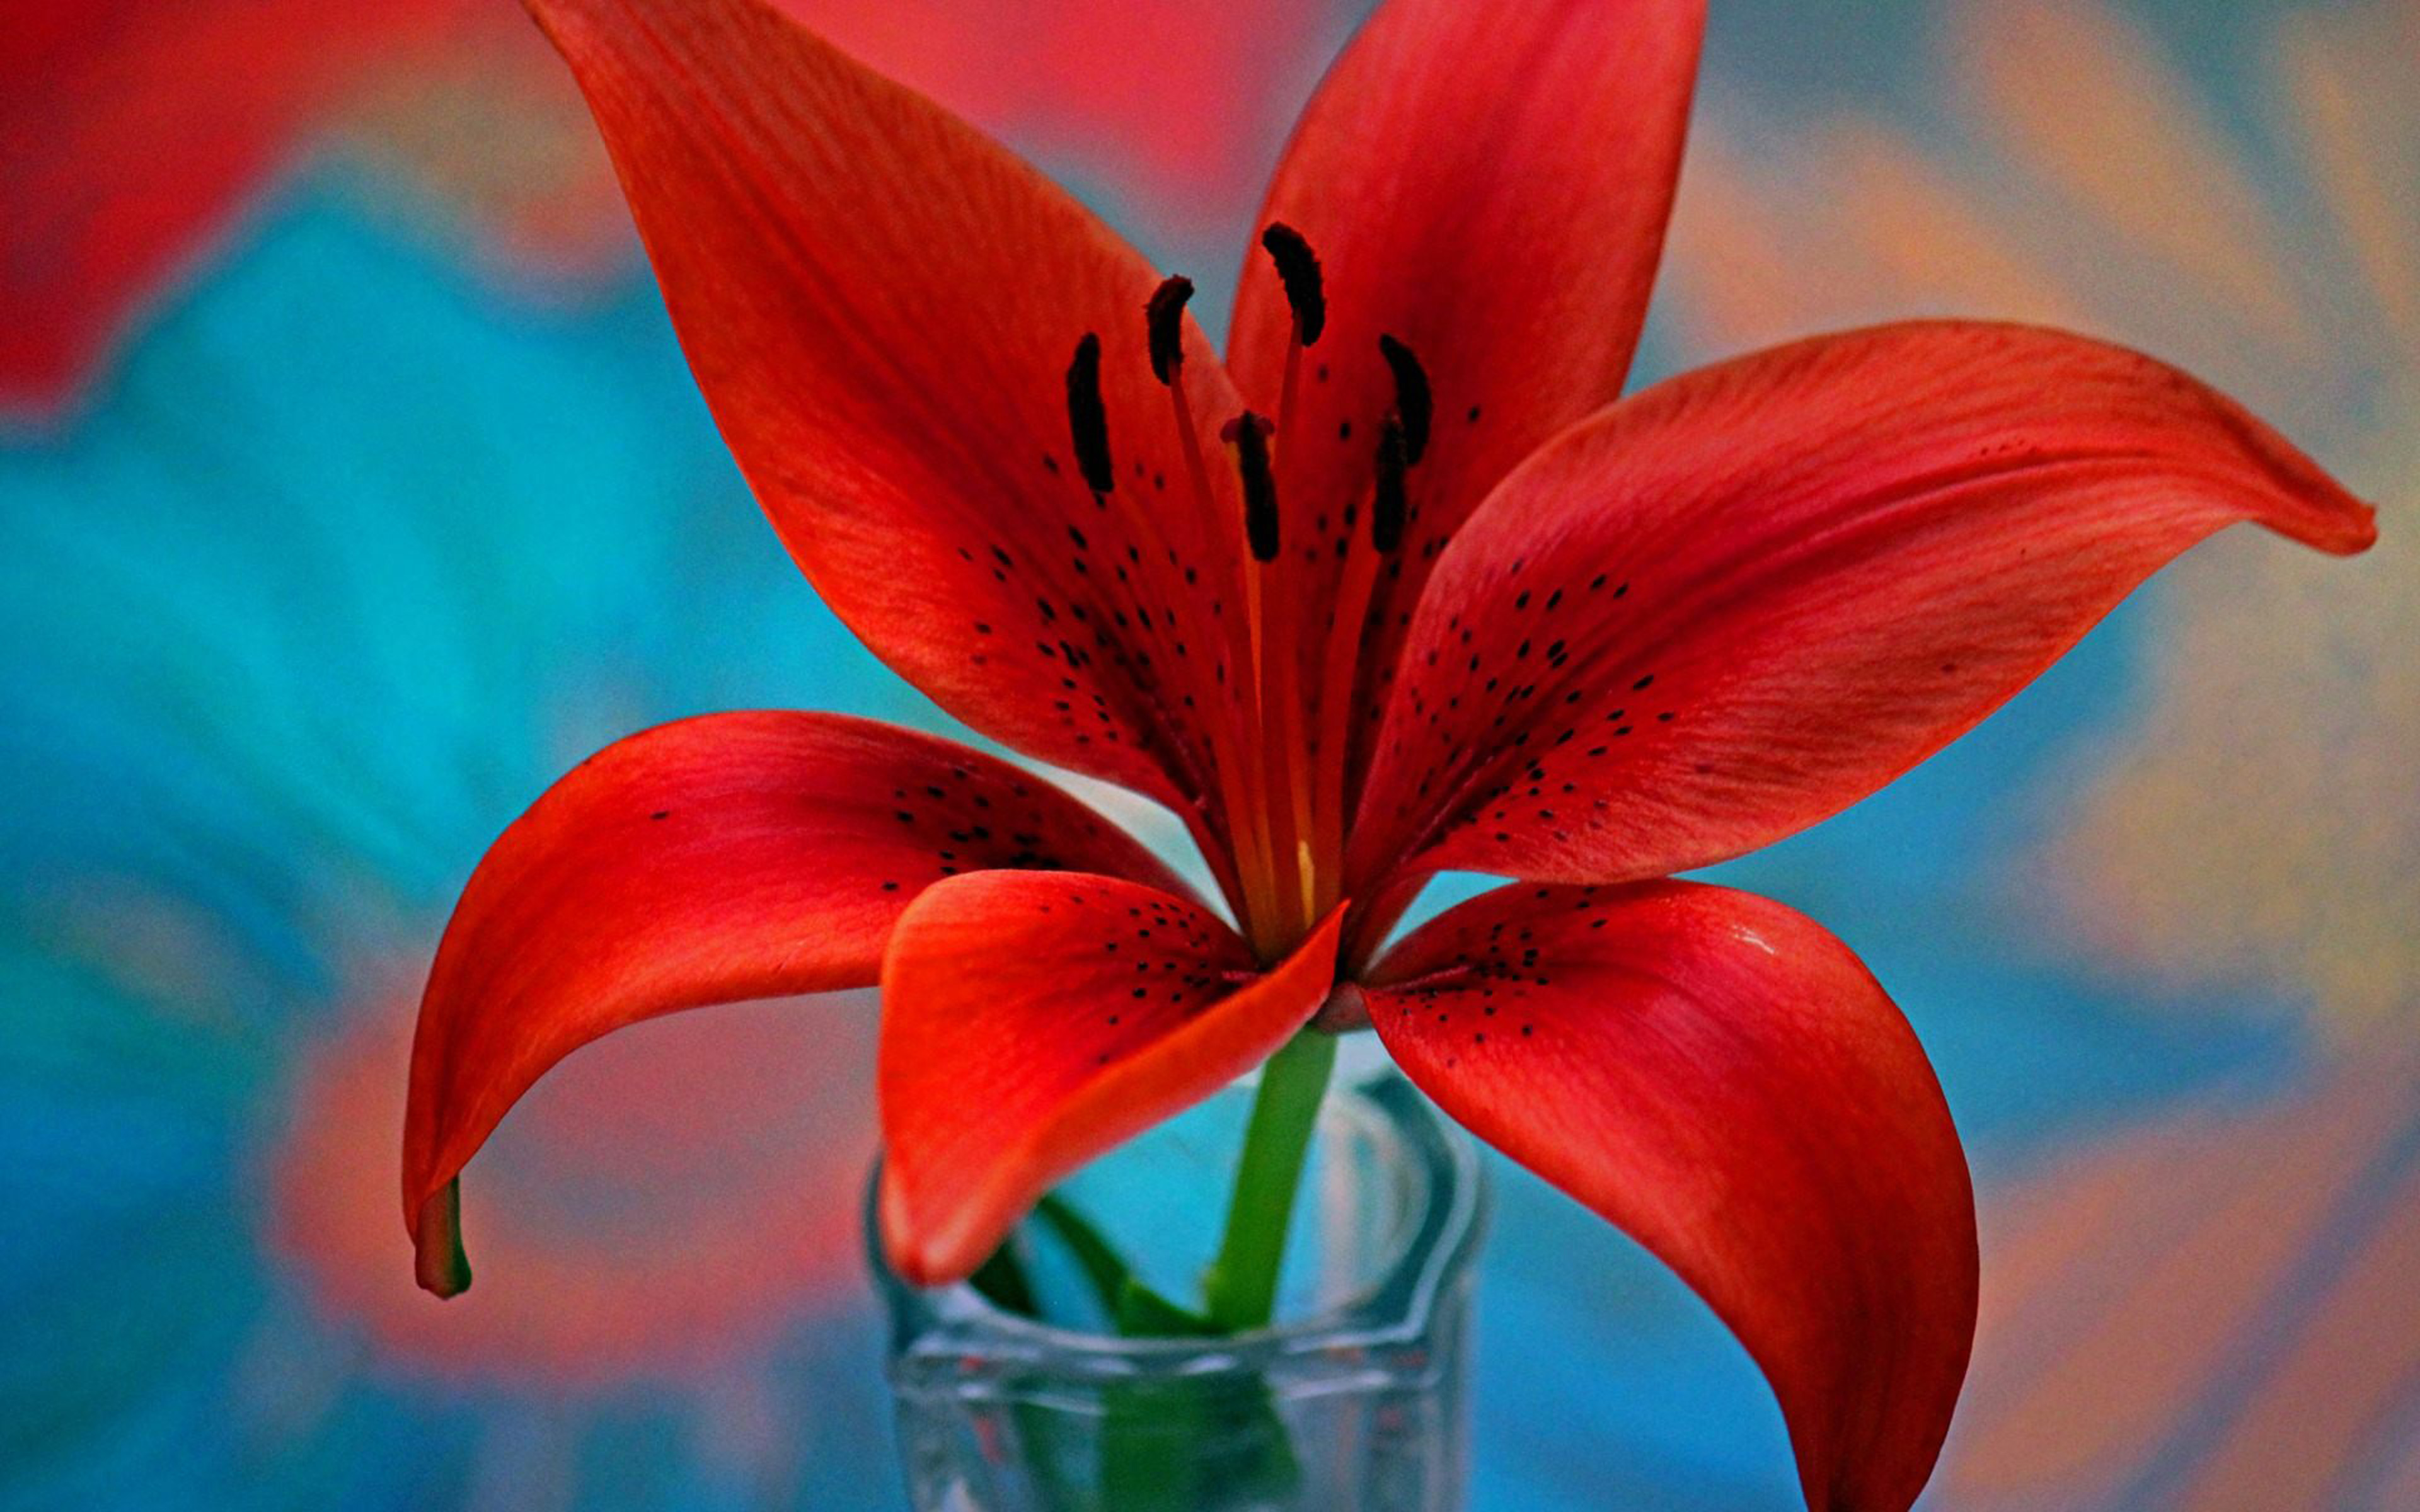 Free Cute Wallpapers For Android Red Lily Flower Wallpaper For Desktop Hd 3840x2400